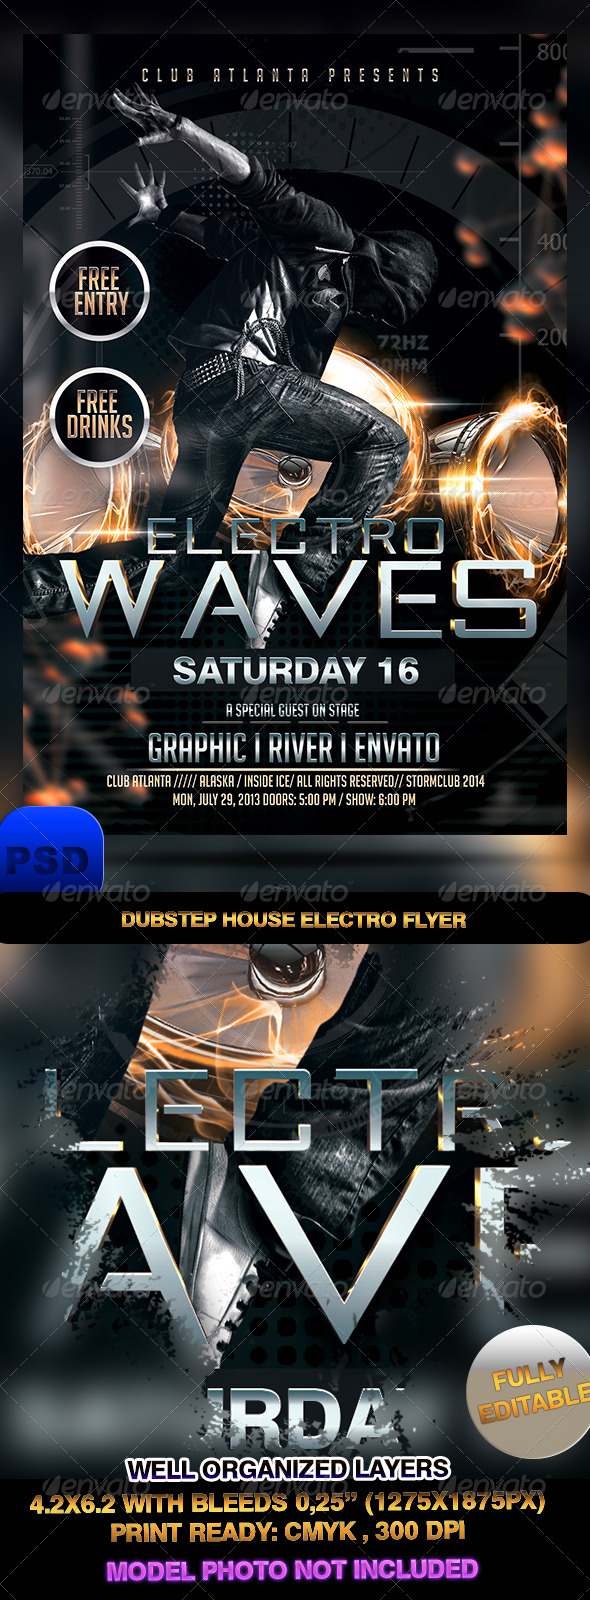 GraphicRiver Dubstep House Electro Flyer 7307486